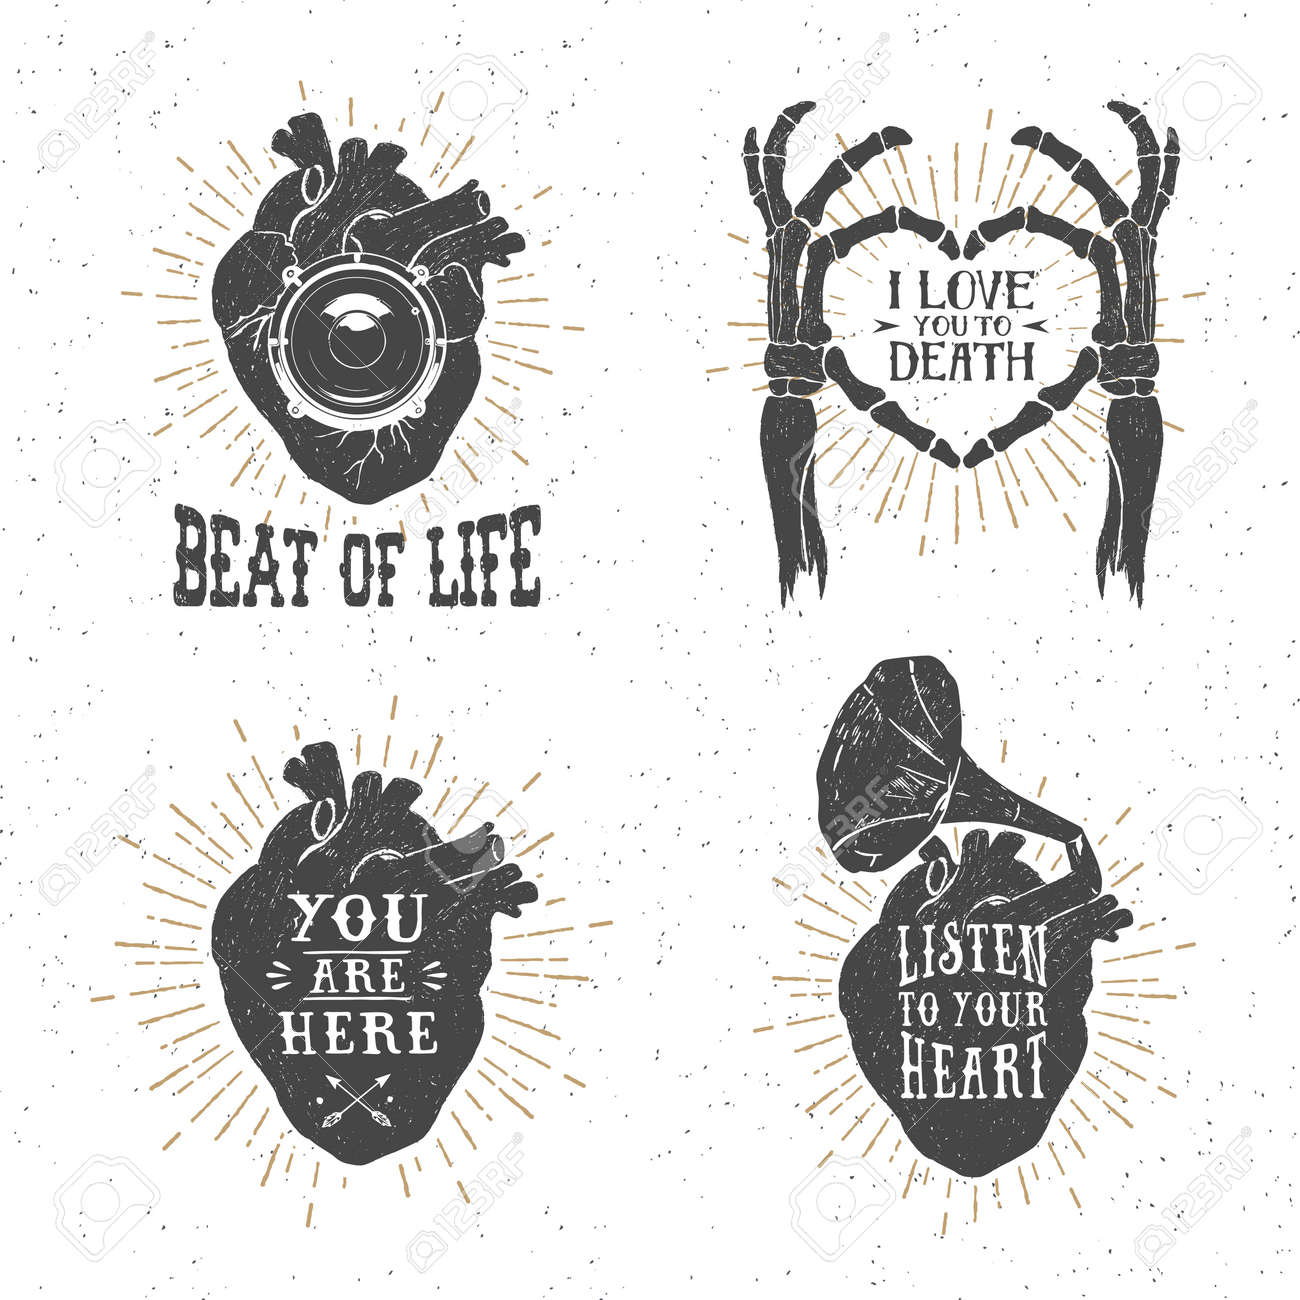 Hand drawn textured romantic posters with human heart, skeleton hands, gramophone horn, stereo speaker, and lettering vector illustrations on the white background. - 51371387